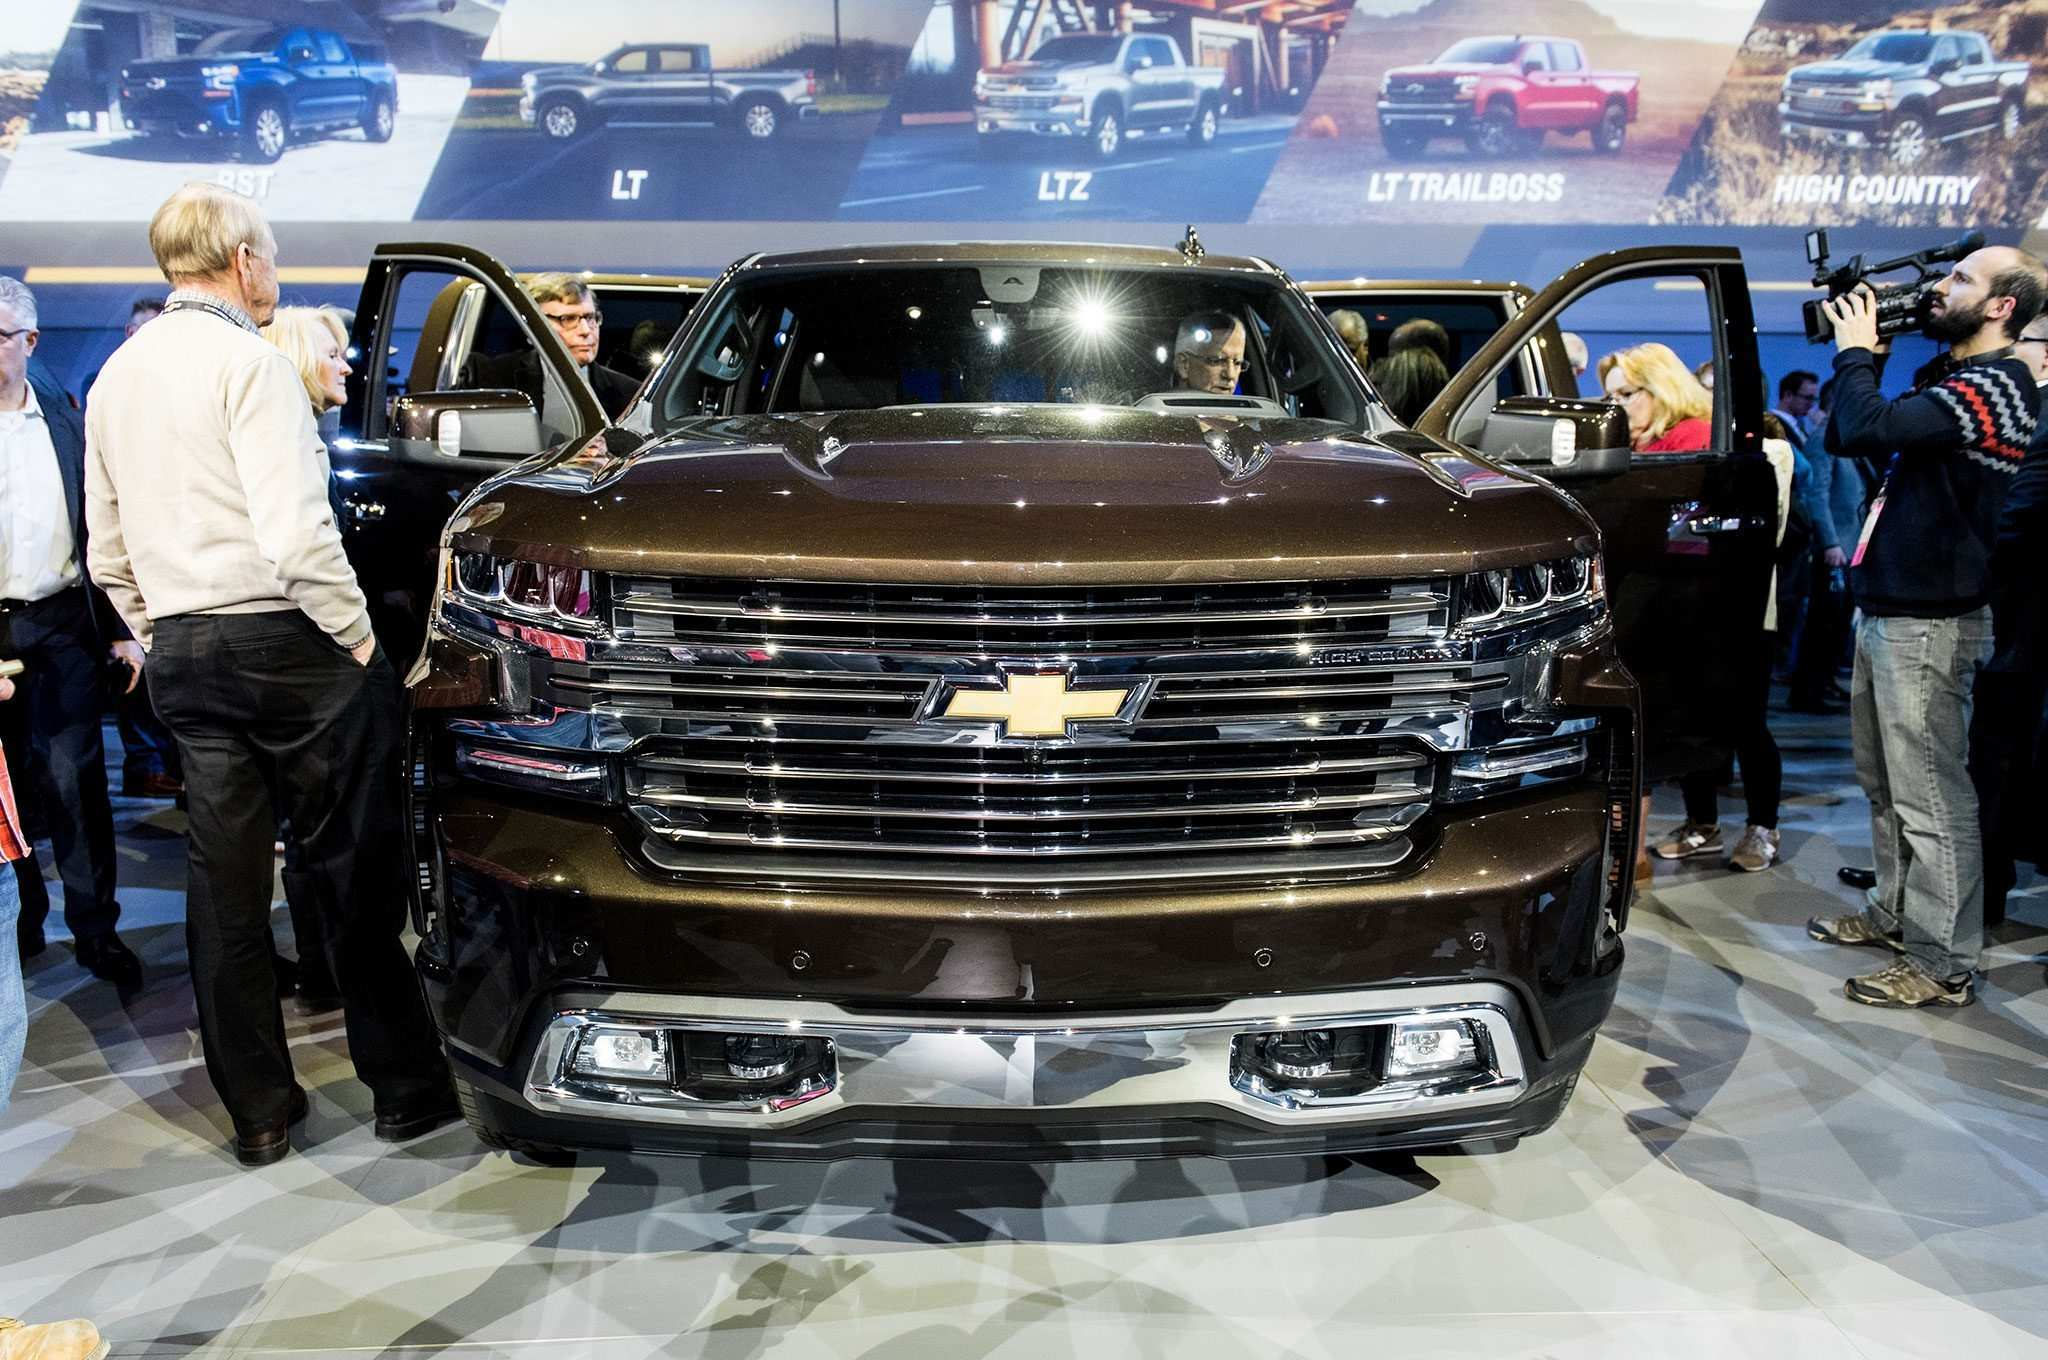 79 Gallery of 2020 Chevrolet Tahoe Lt Release Date with 2020 Chevrolet Tahoe Lt